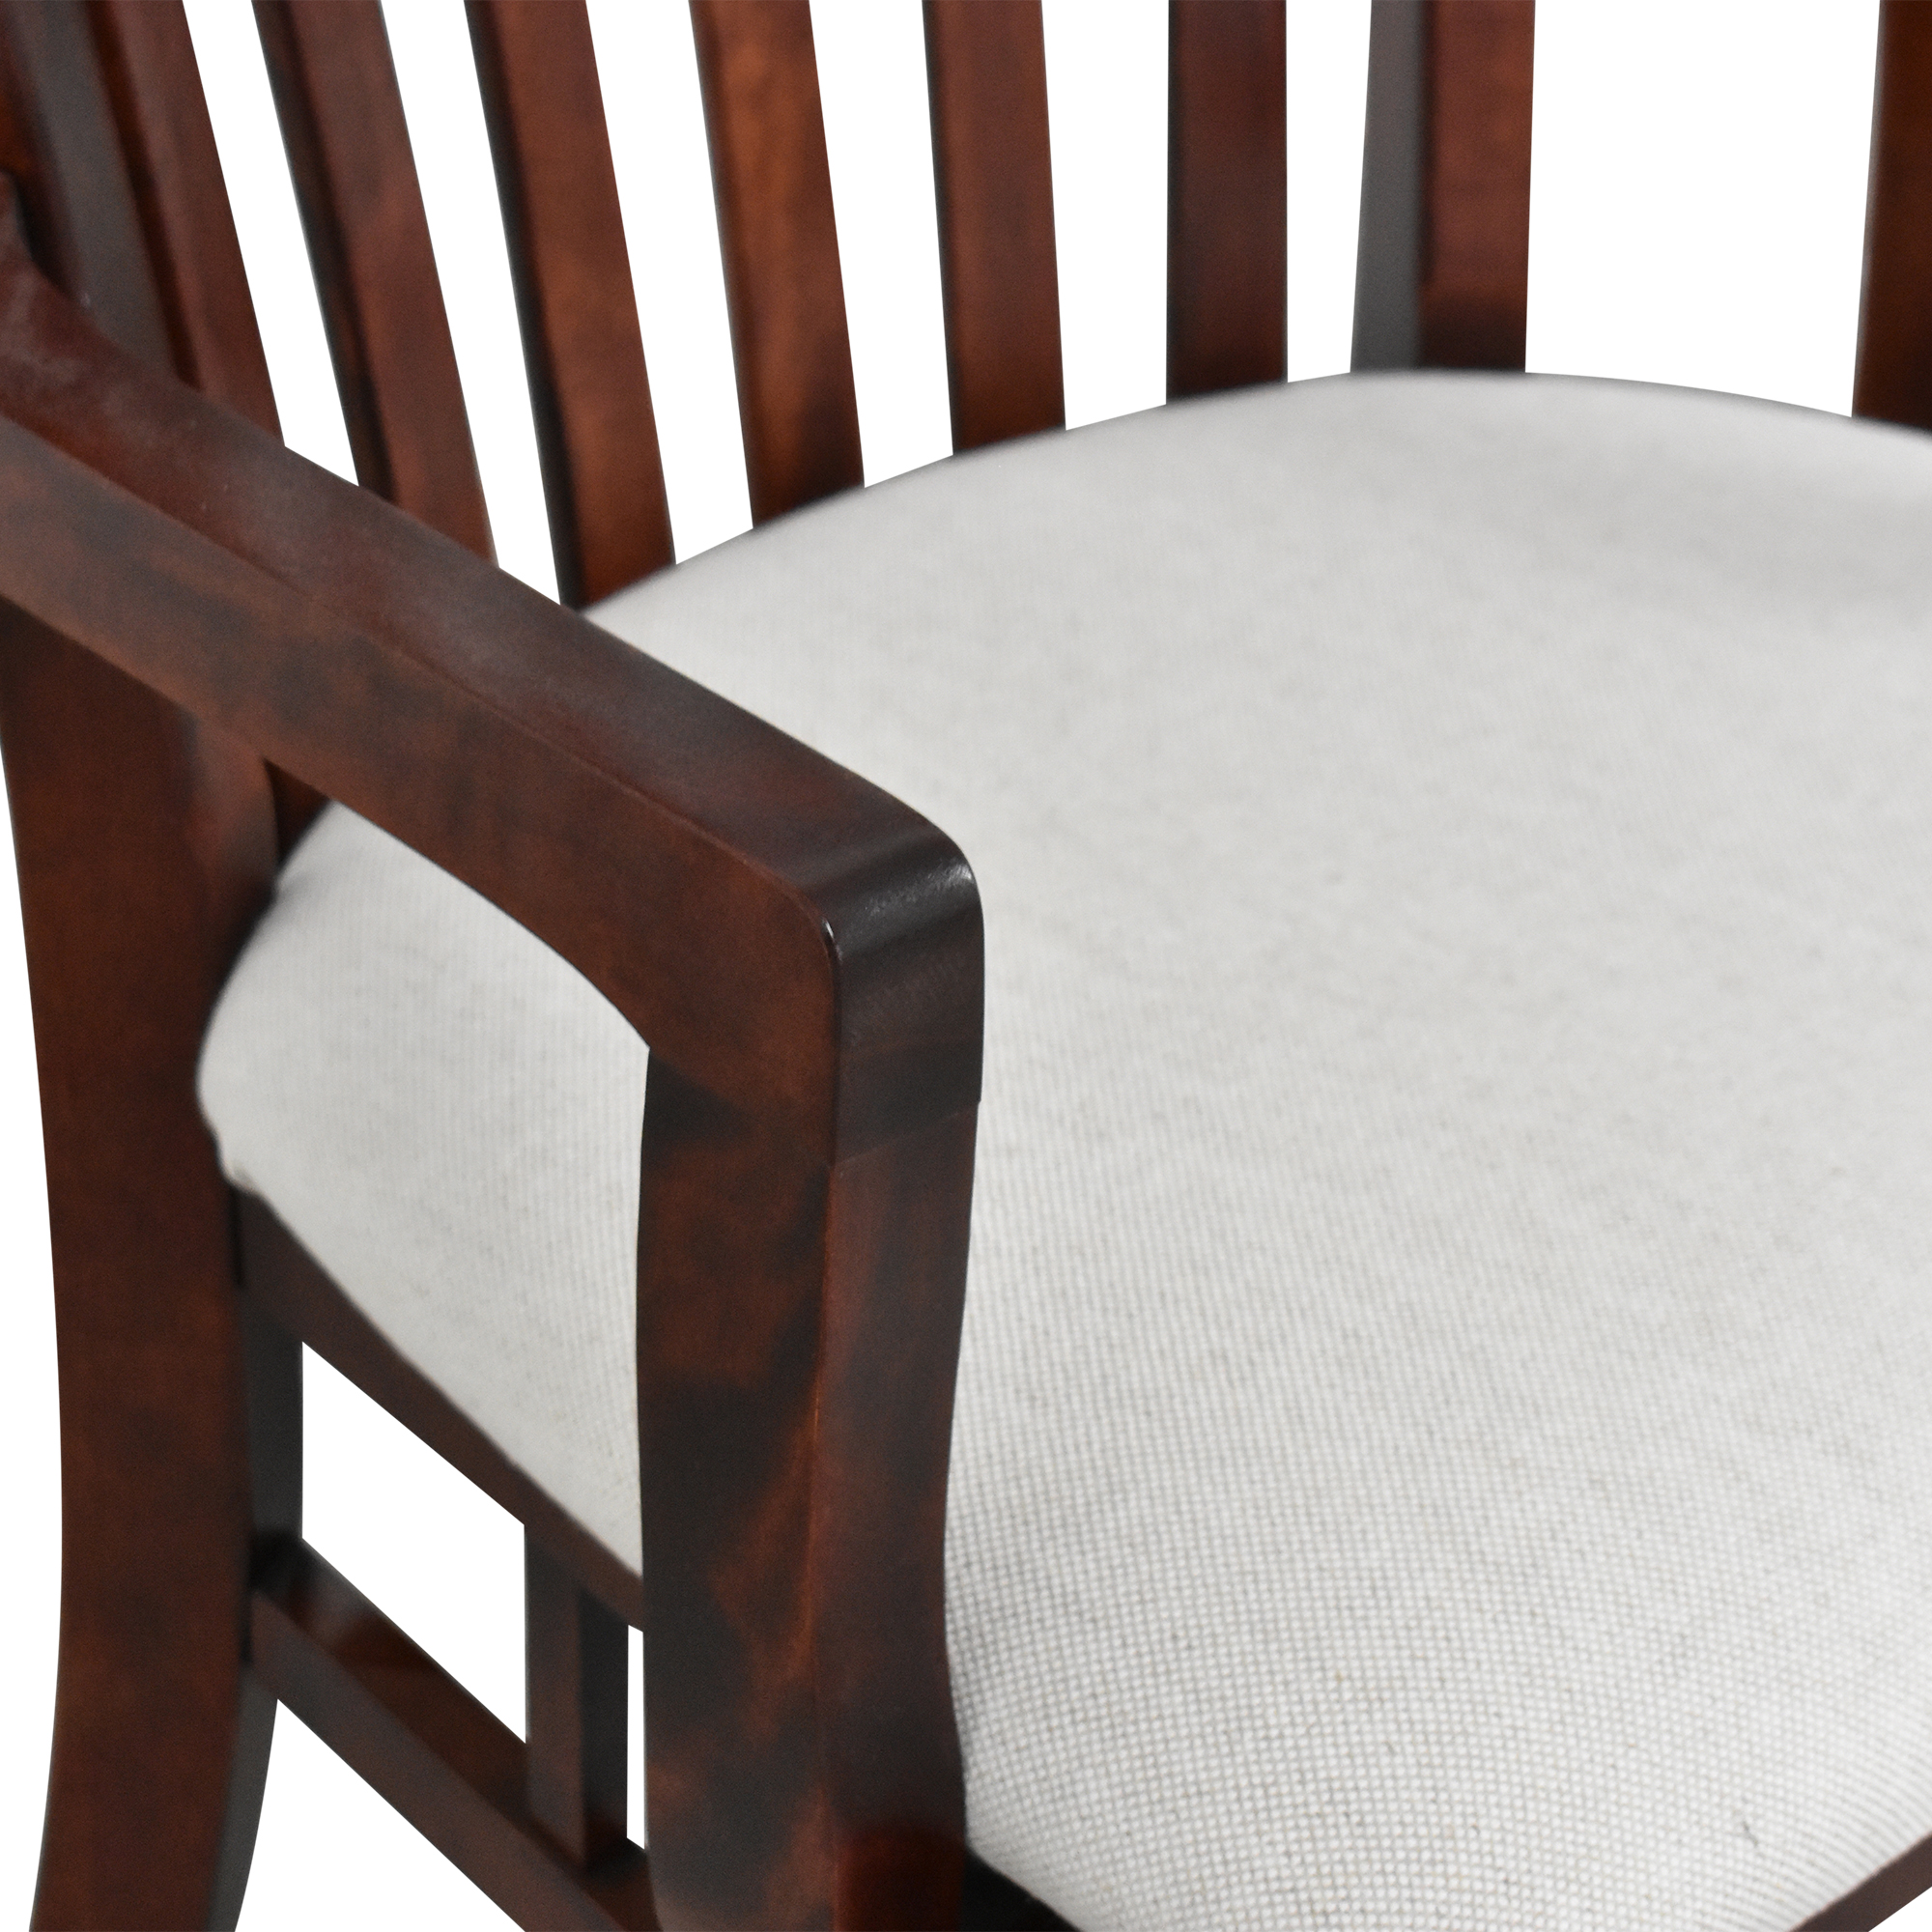 Canadel Slat Back Dining Chairs / Chairs